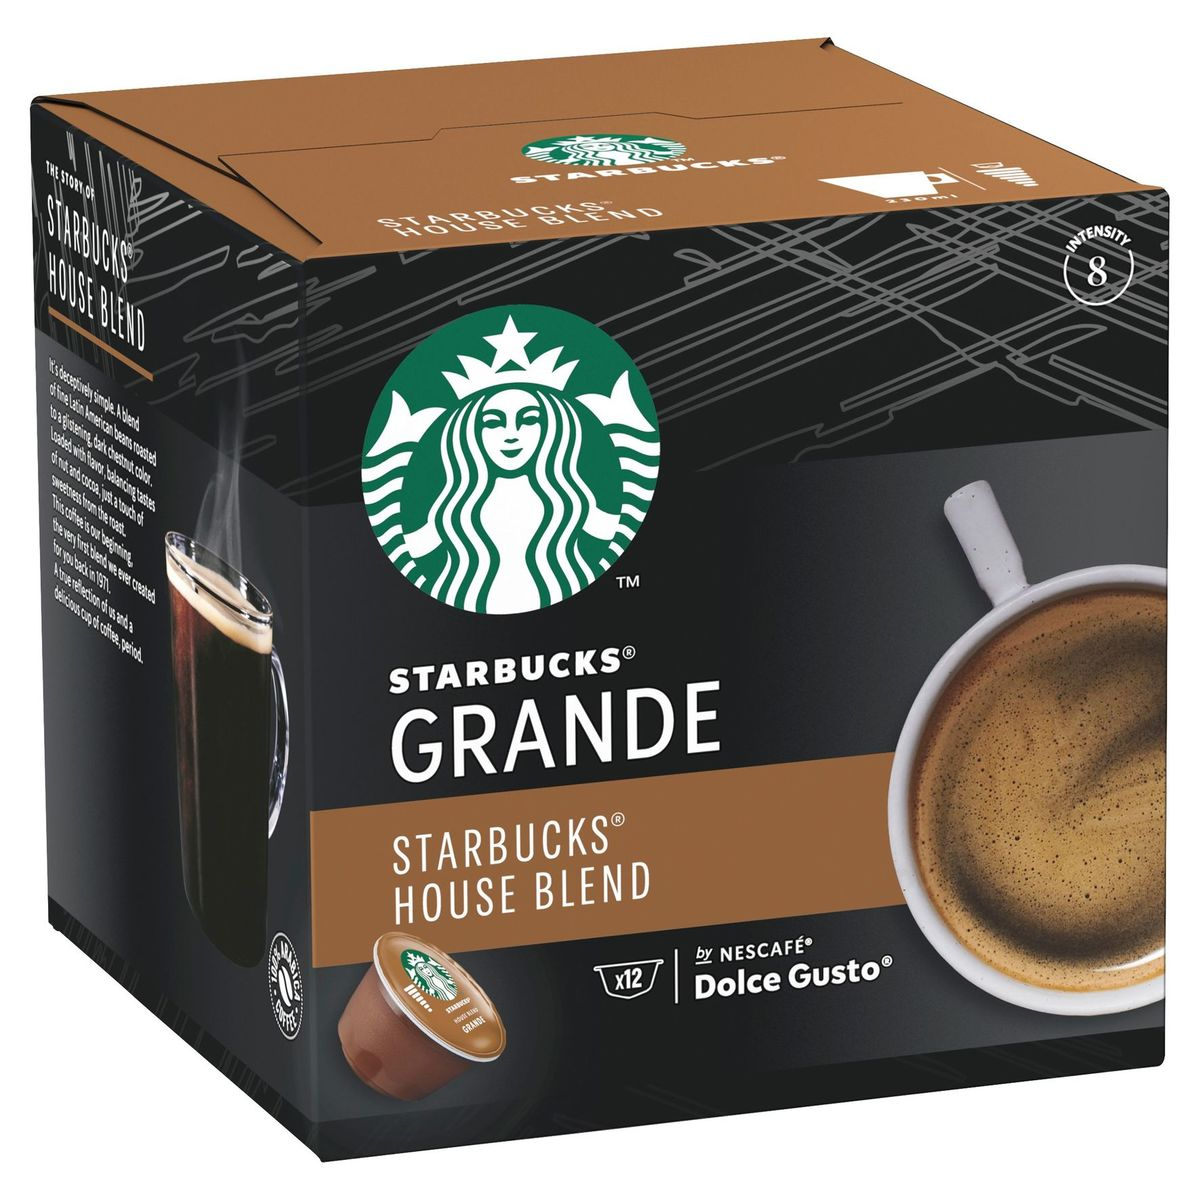 STARBUCKS House Blend by NESCAFE DOLCE GUSTO Ambrée 12 Capsules